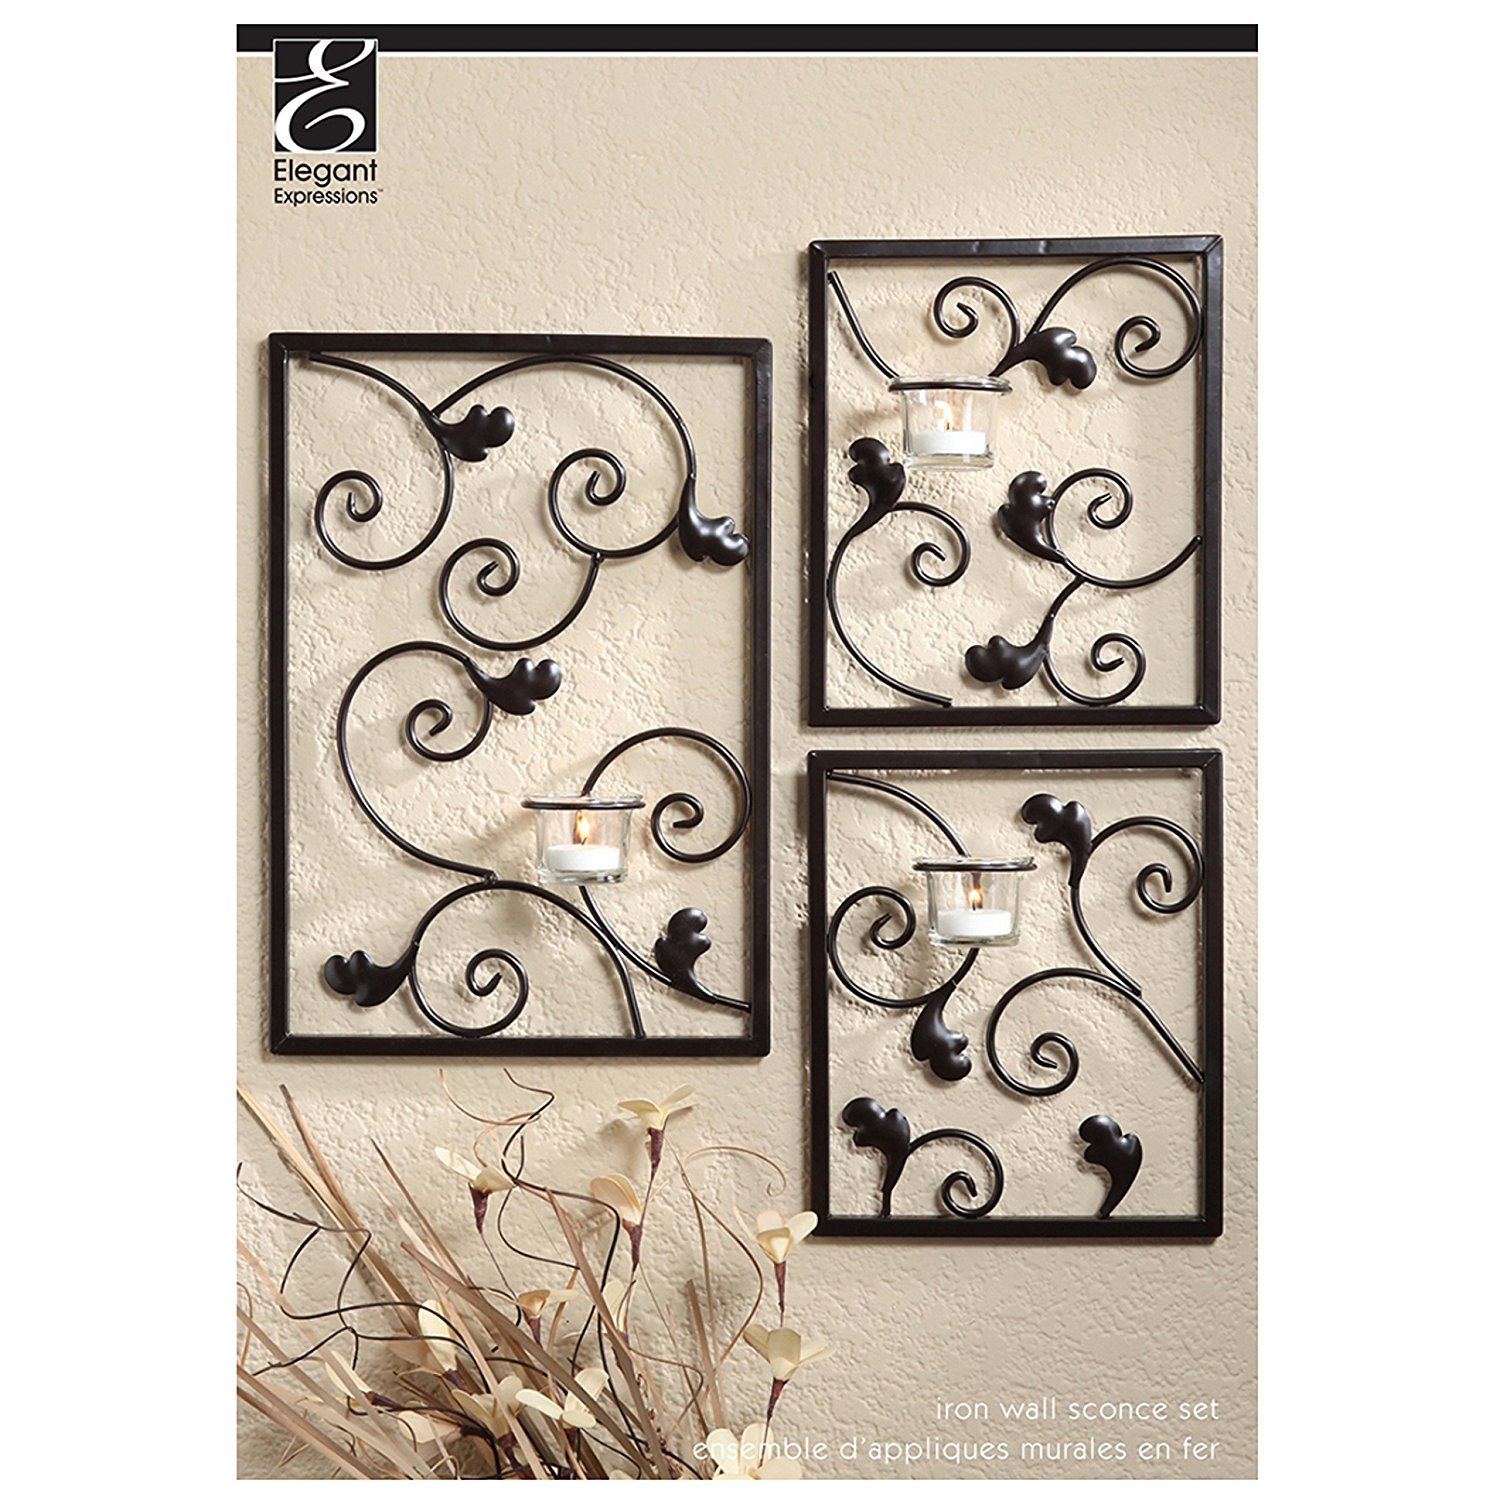 Hosley's Wall Sconce Iron Tea Light Set (3 Piece - Large 15 HIgh and Smal 8 High). Modern Wall Art Plaque for Your Home, Spa, Aromatherapy or As a Gift HG Global BS51654WC